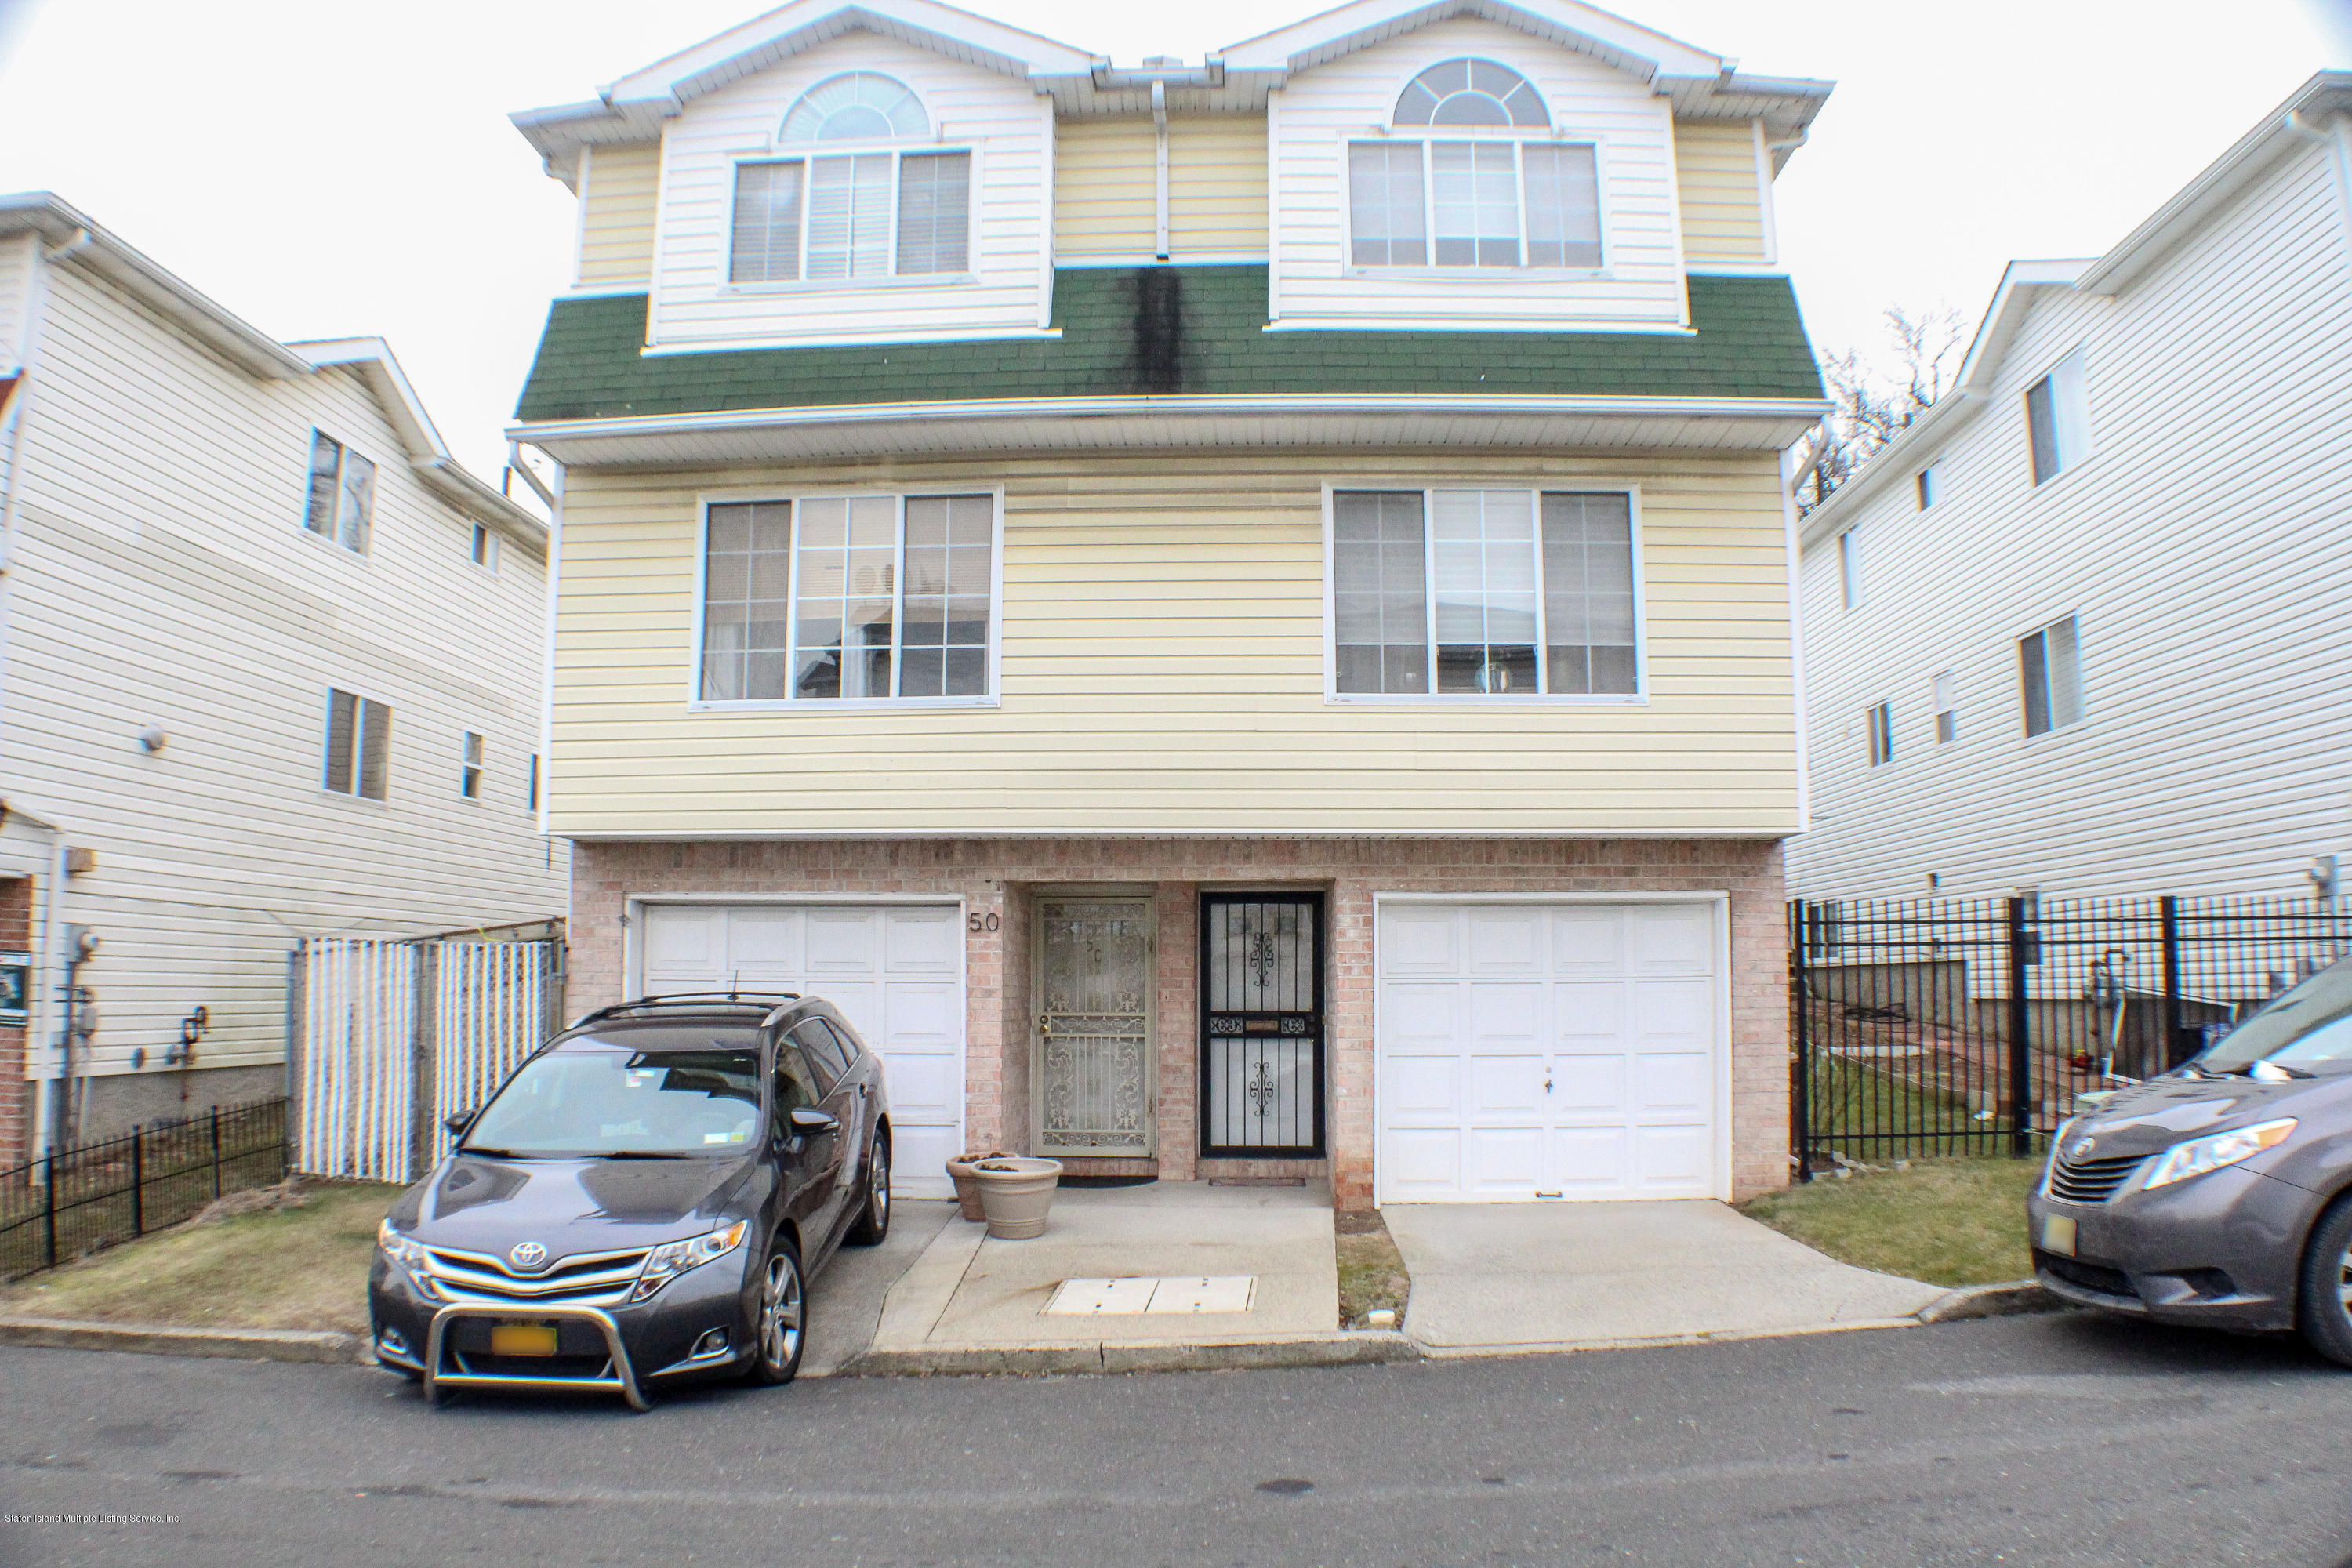 Single Family - Semi-Attached 52 Belair Lane  Staten Island, NY 10305, MLS-1126177-2